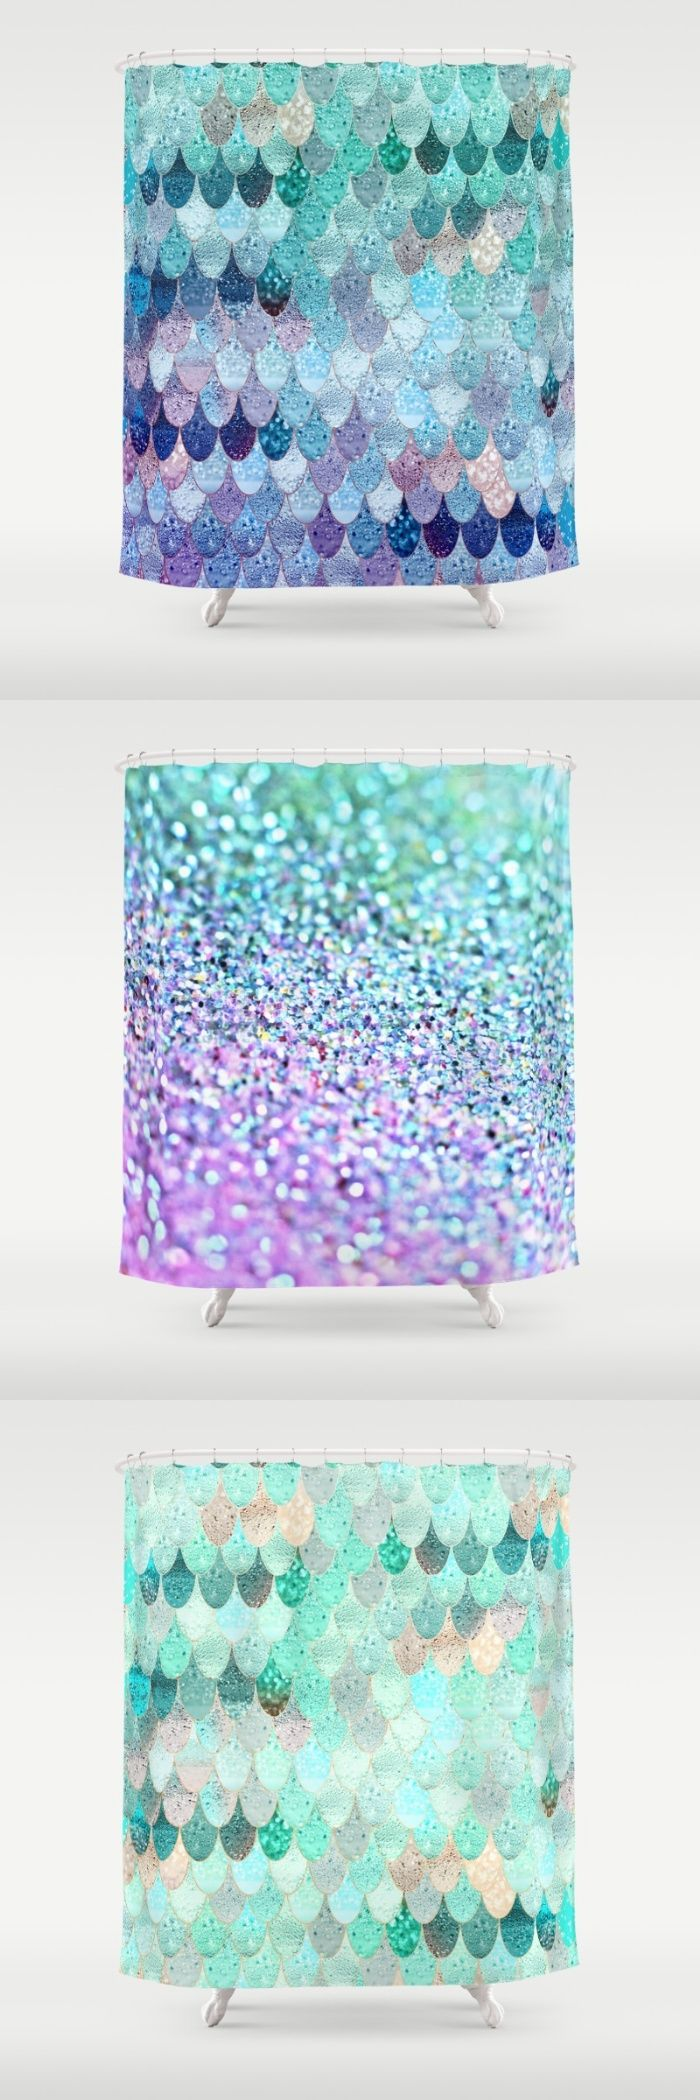 Mermaid Shower Curtain - Technically this is a shower curtain but i think the mermaid scales effect would make a